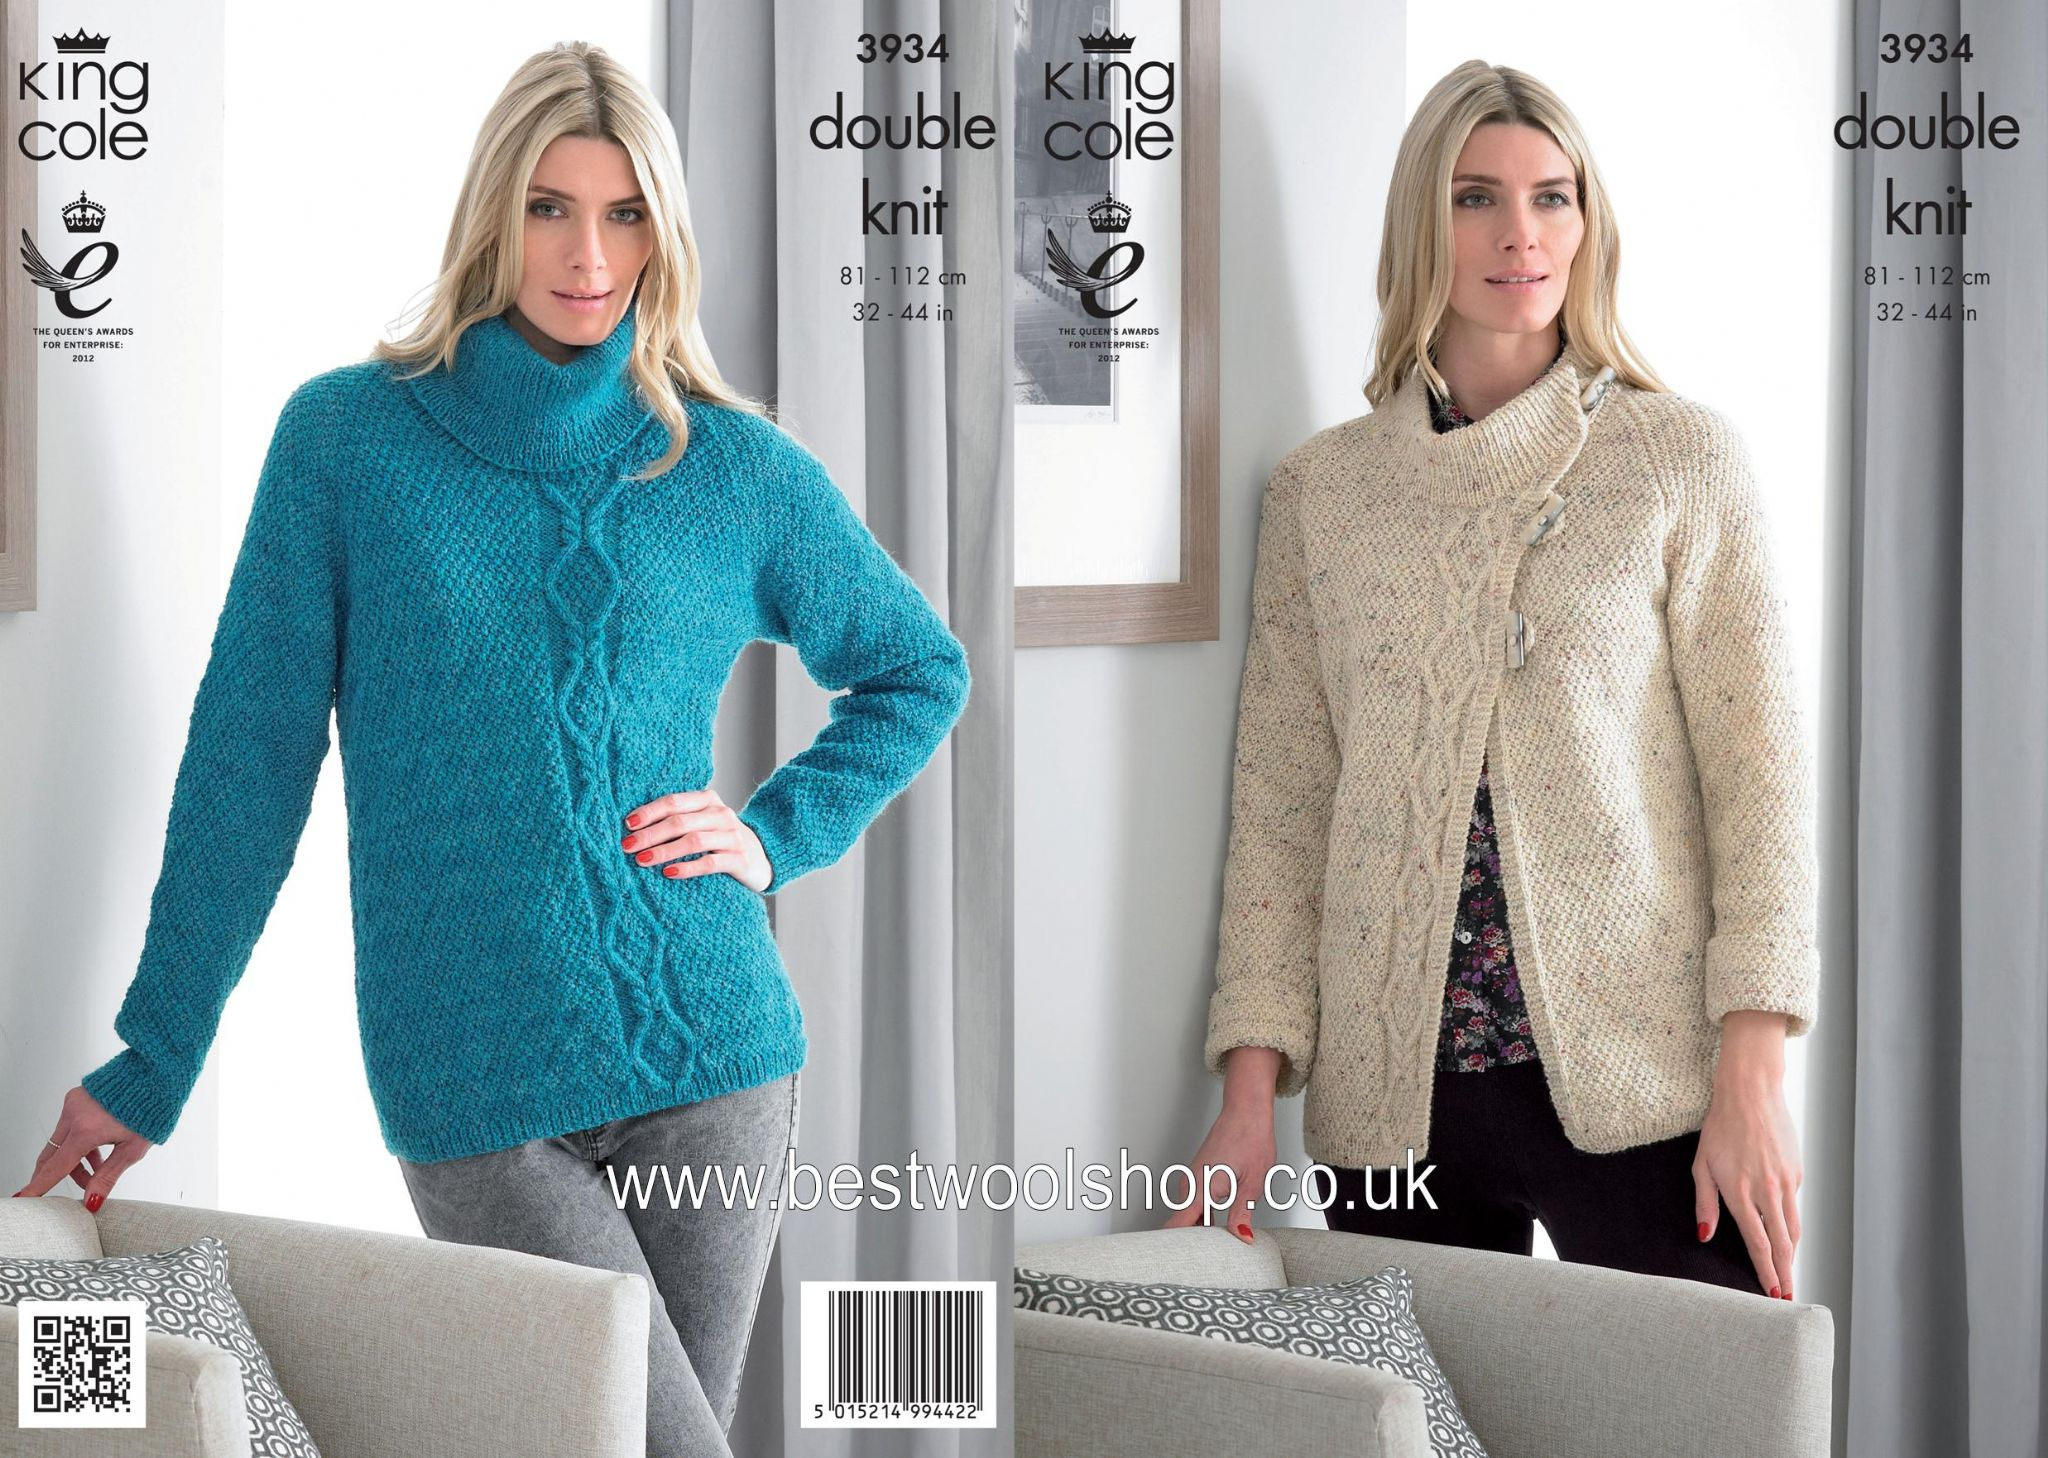 3934 - KING COLE MOODS DK CABLED SWEATER & CARDIGAN KNITTING PATTERN ...